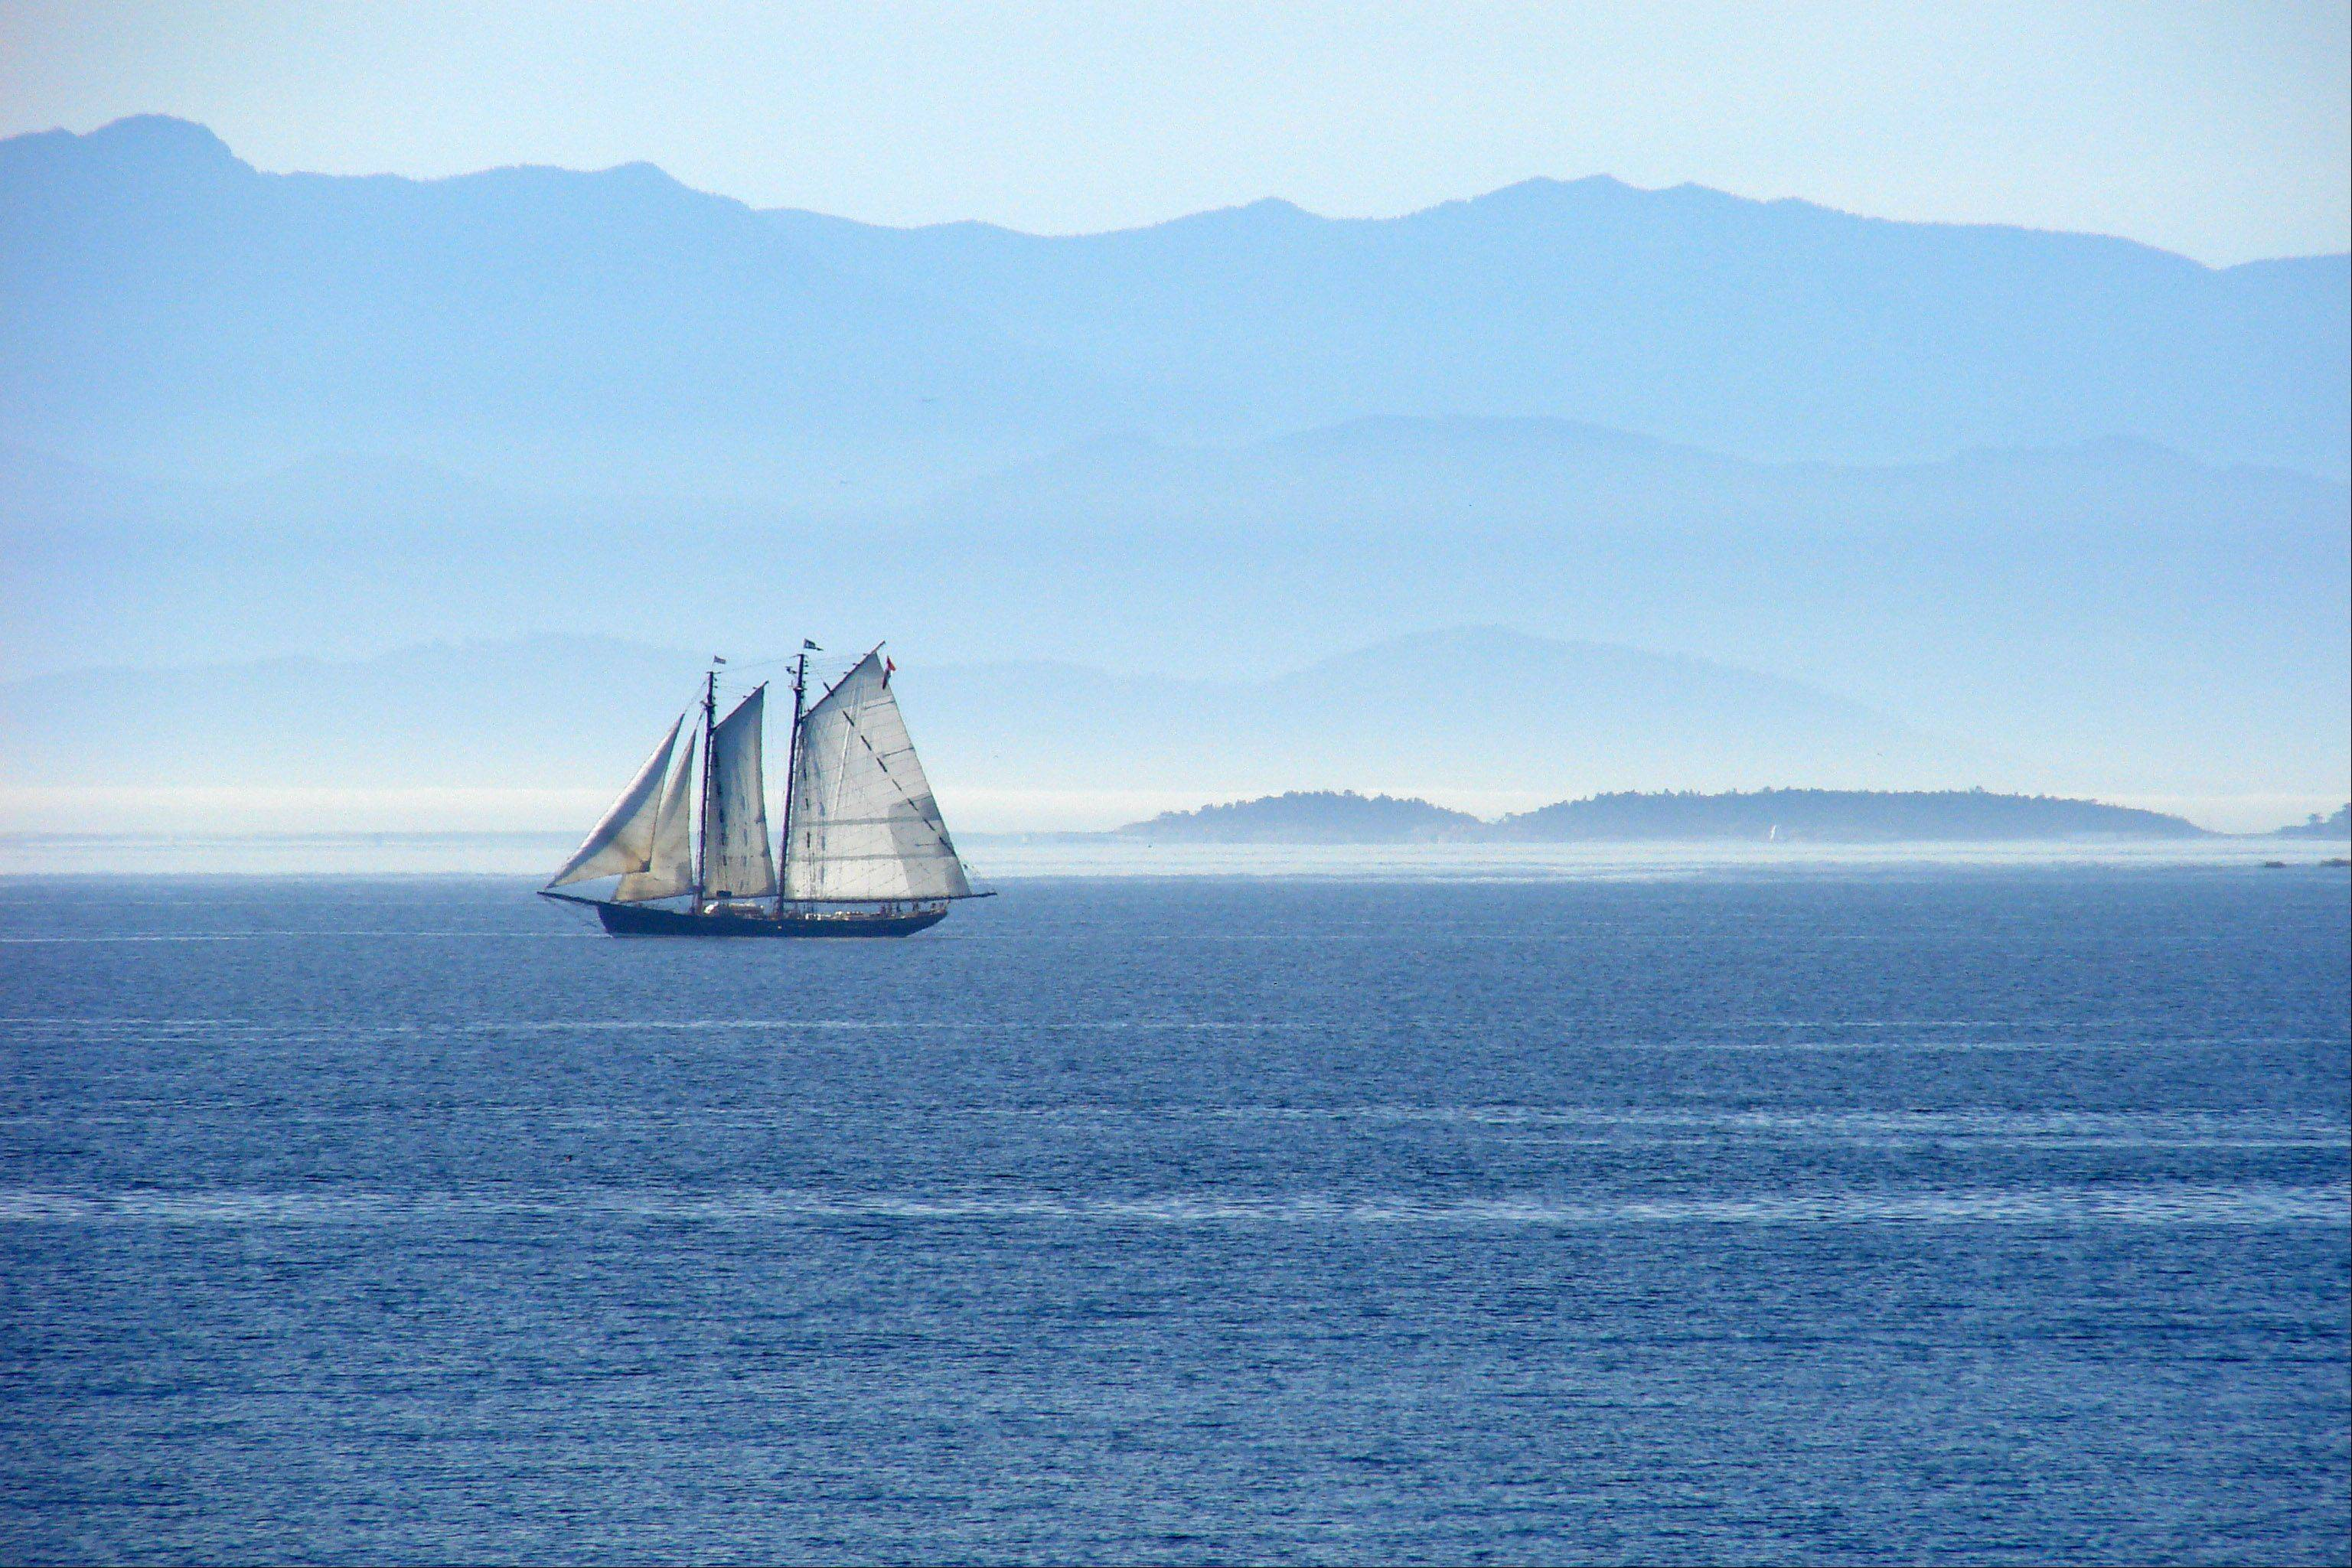 This photo of a sailing ship was taken from the Canadian Naval Station, near Victoria, BC, Canada. The opposite shore is looking in the direction of Port Angeles, Washington.